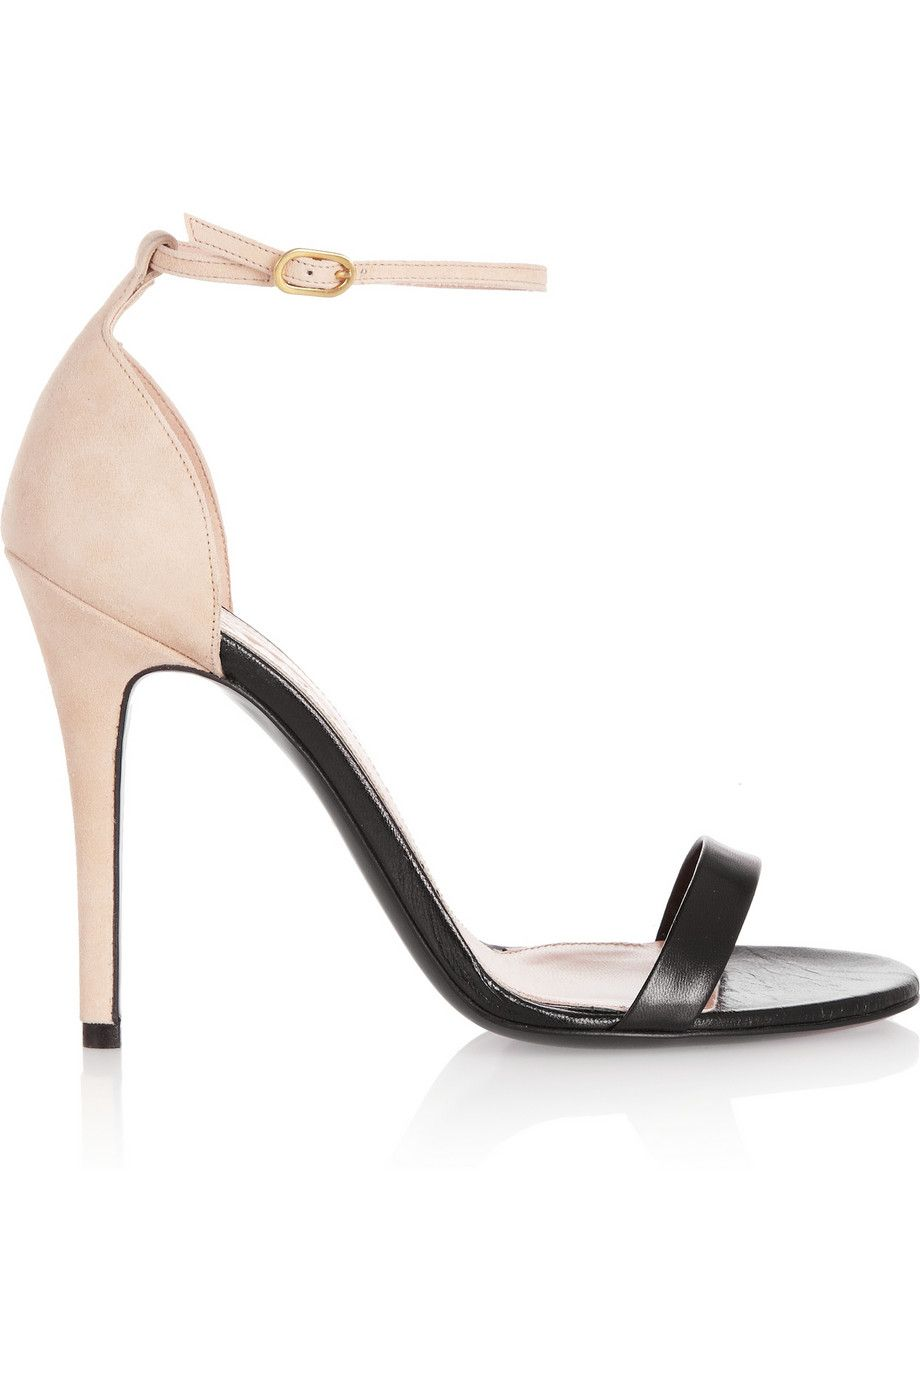 Leather and suede sandals Alexander McQueen kRAS3yieD